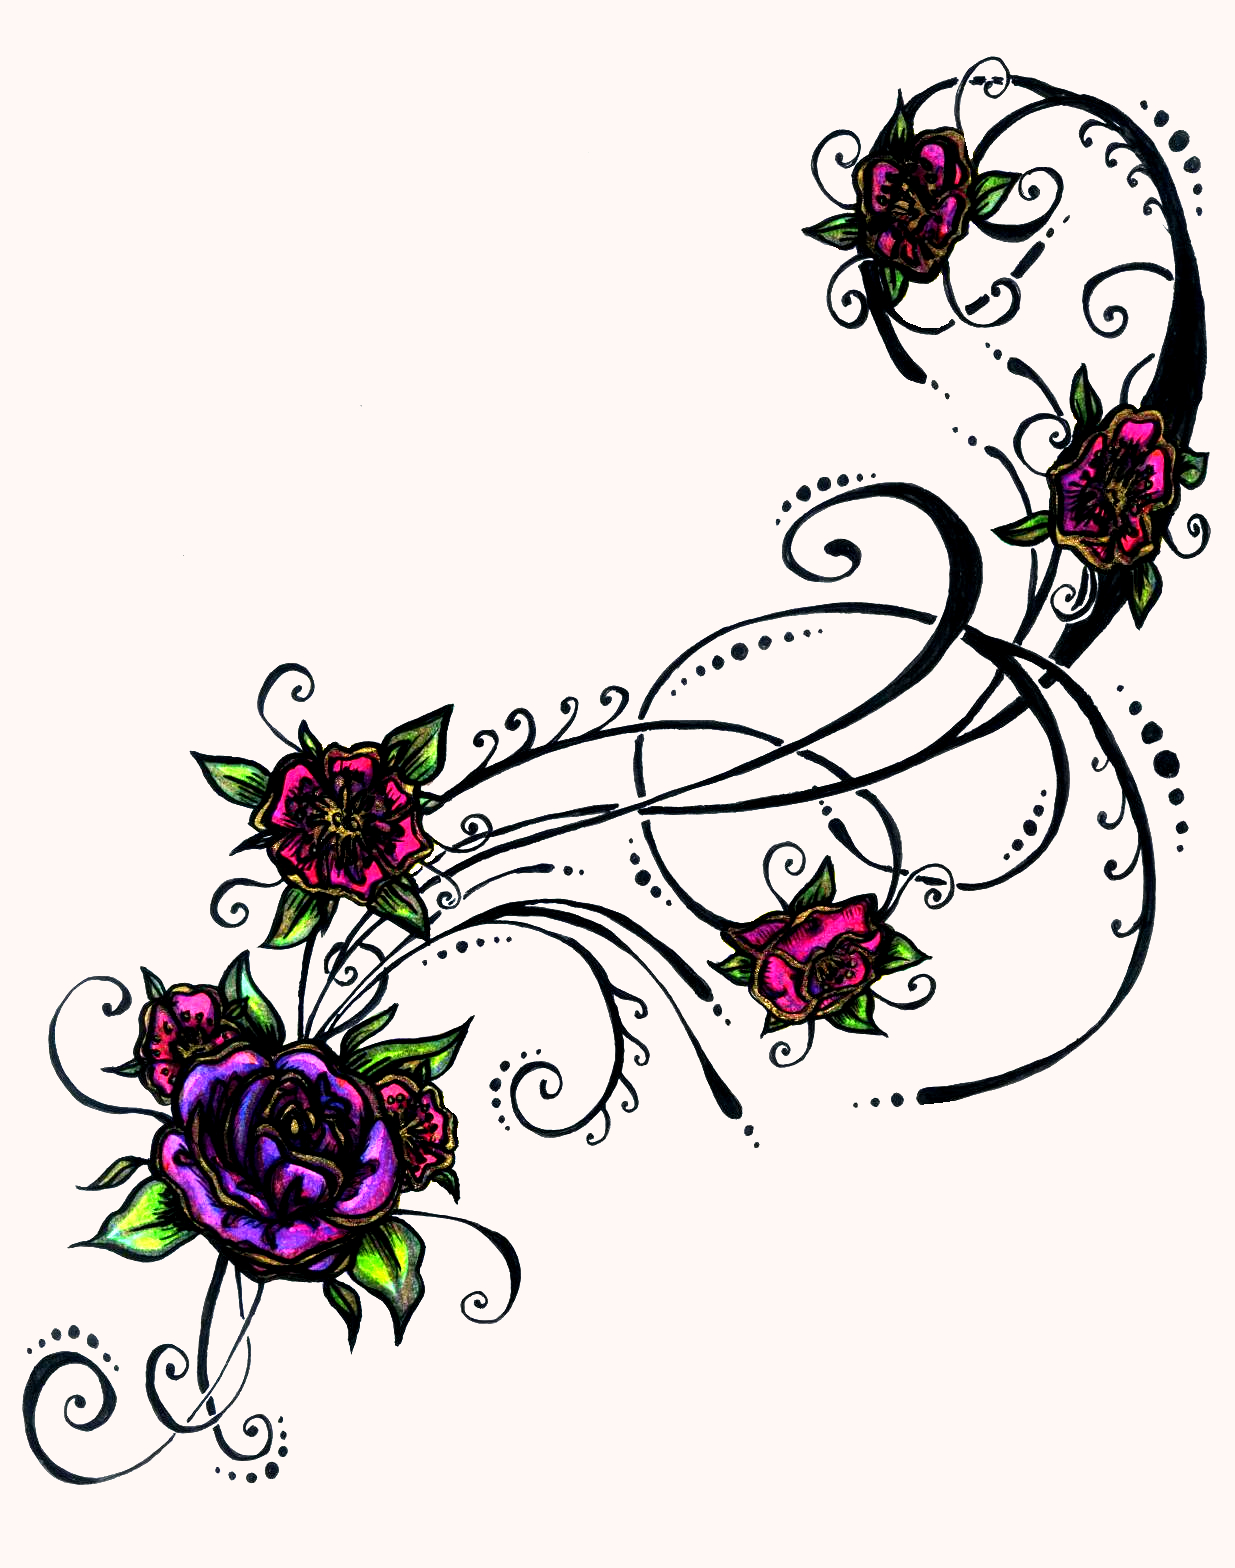 flower tattoos designs ideas and meaning tattoos for you. Black Bedroom Furniture Sets. Home Design Ideas